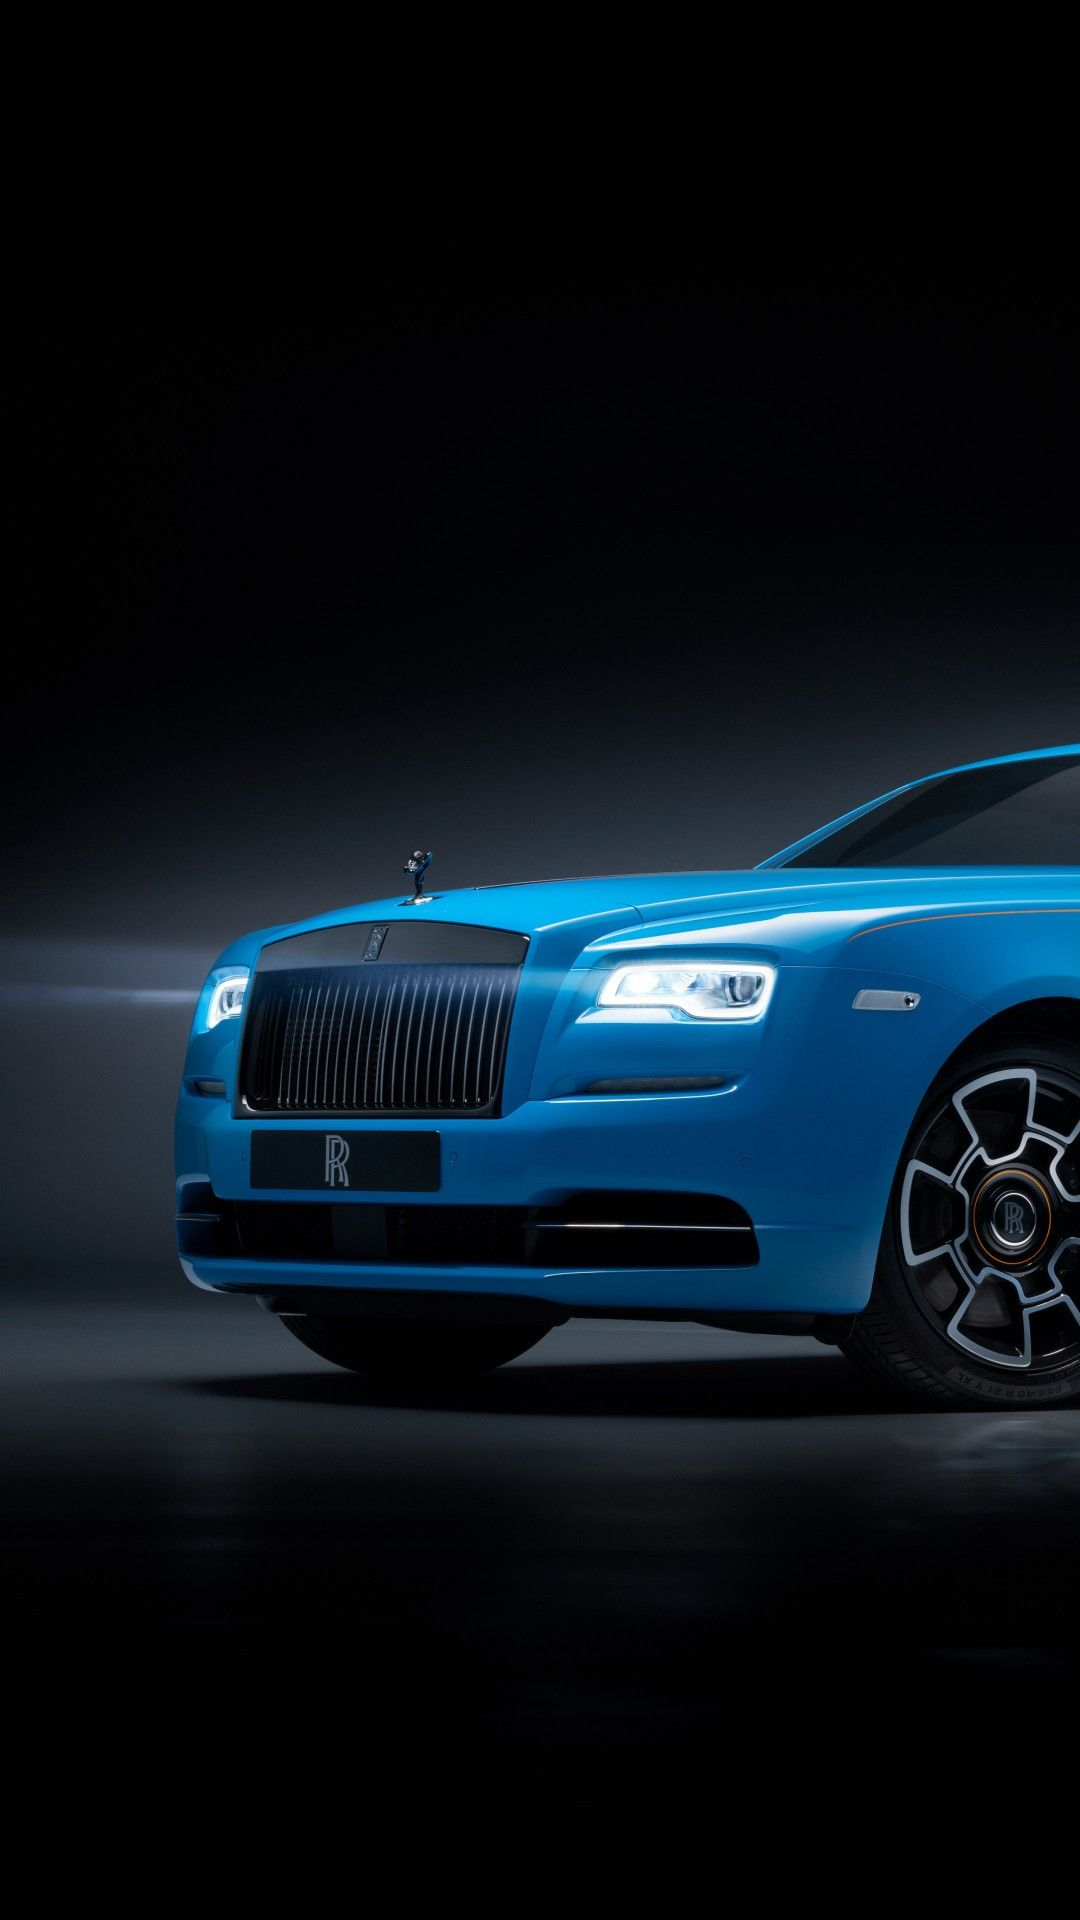 Cars Mobile Full Hd Wallpapers 1080x1920 In 2021 Rolls Royce Wraith Rolls Royce Wraith Black Rolls Royce Ultra hd rolls royce car hd wallpapers